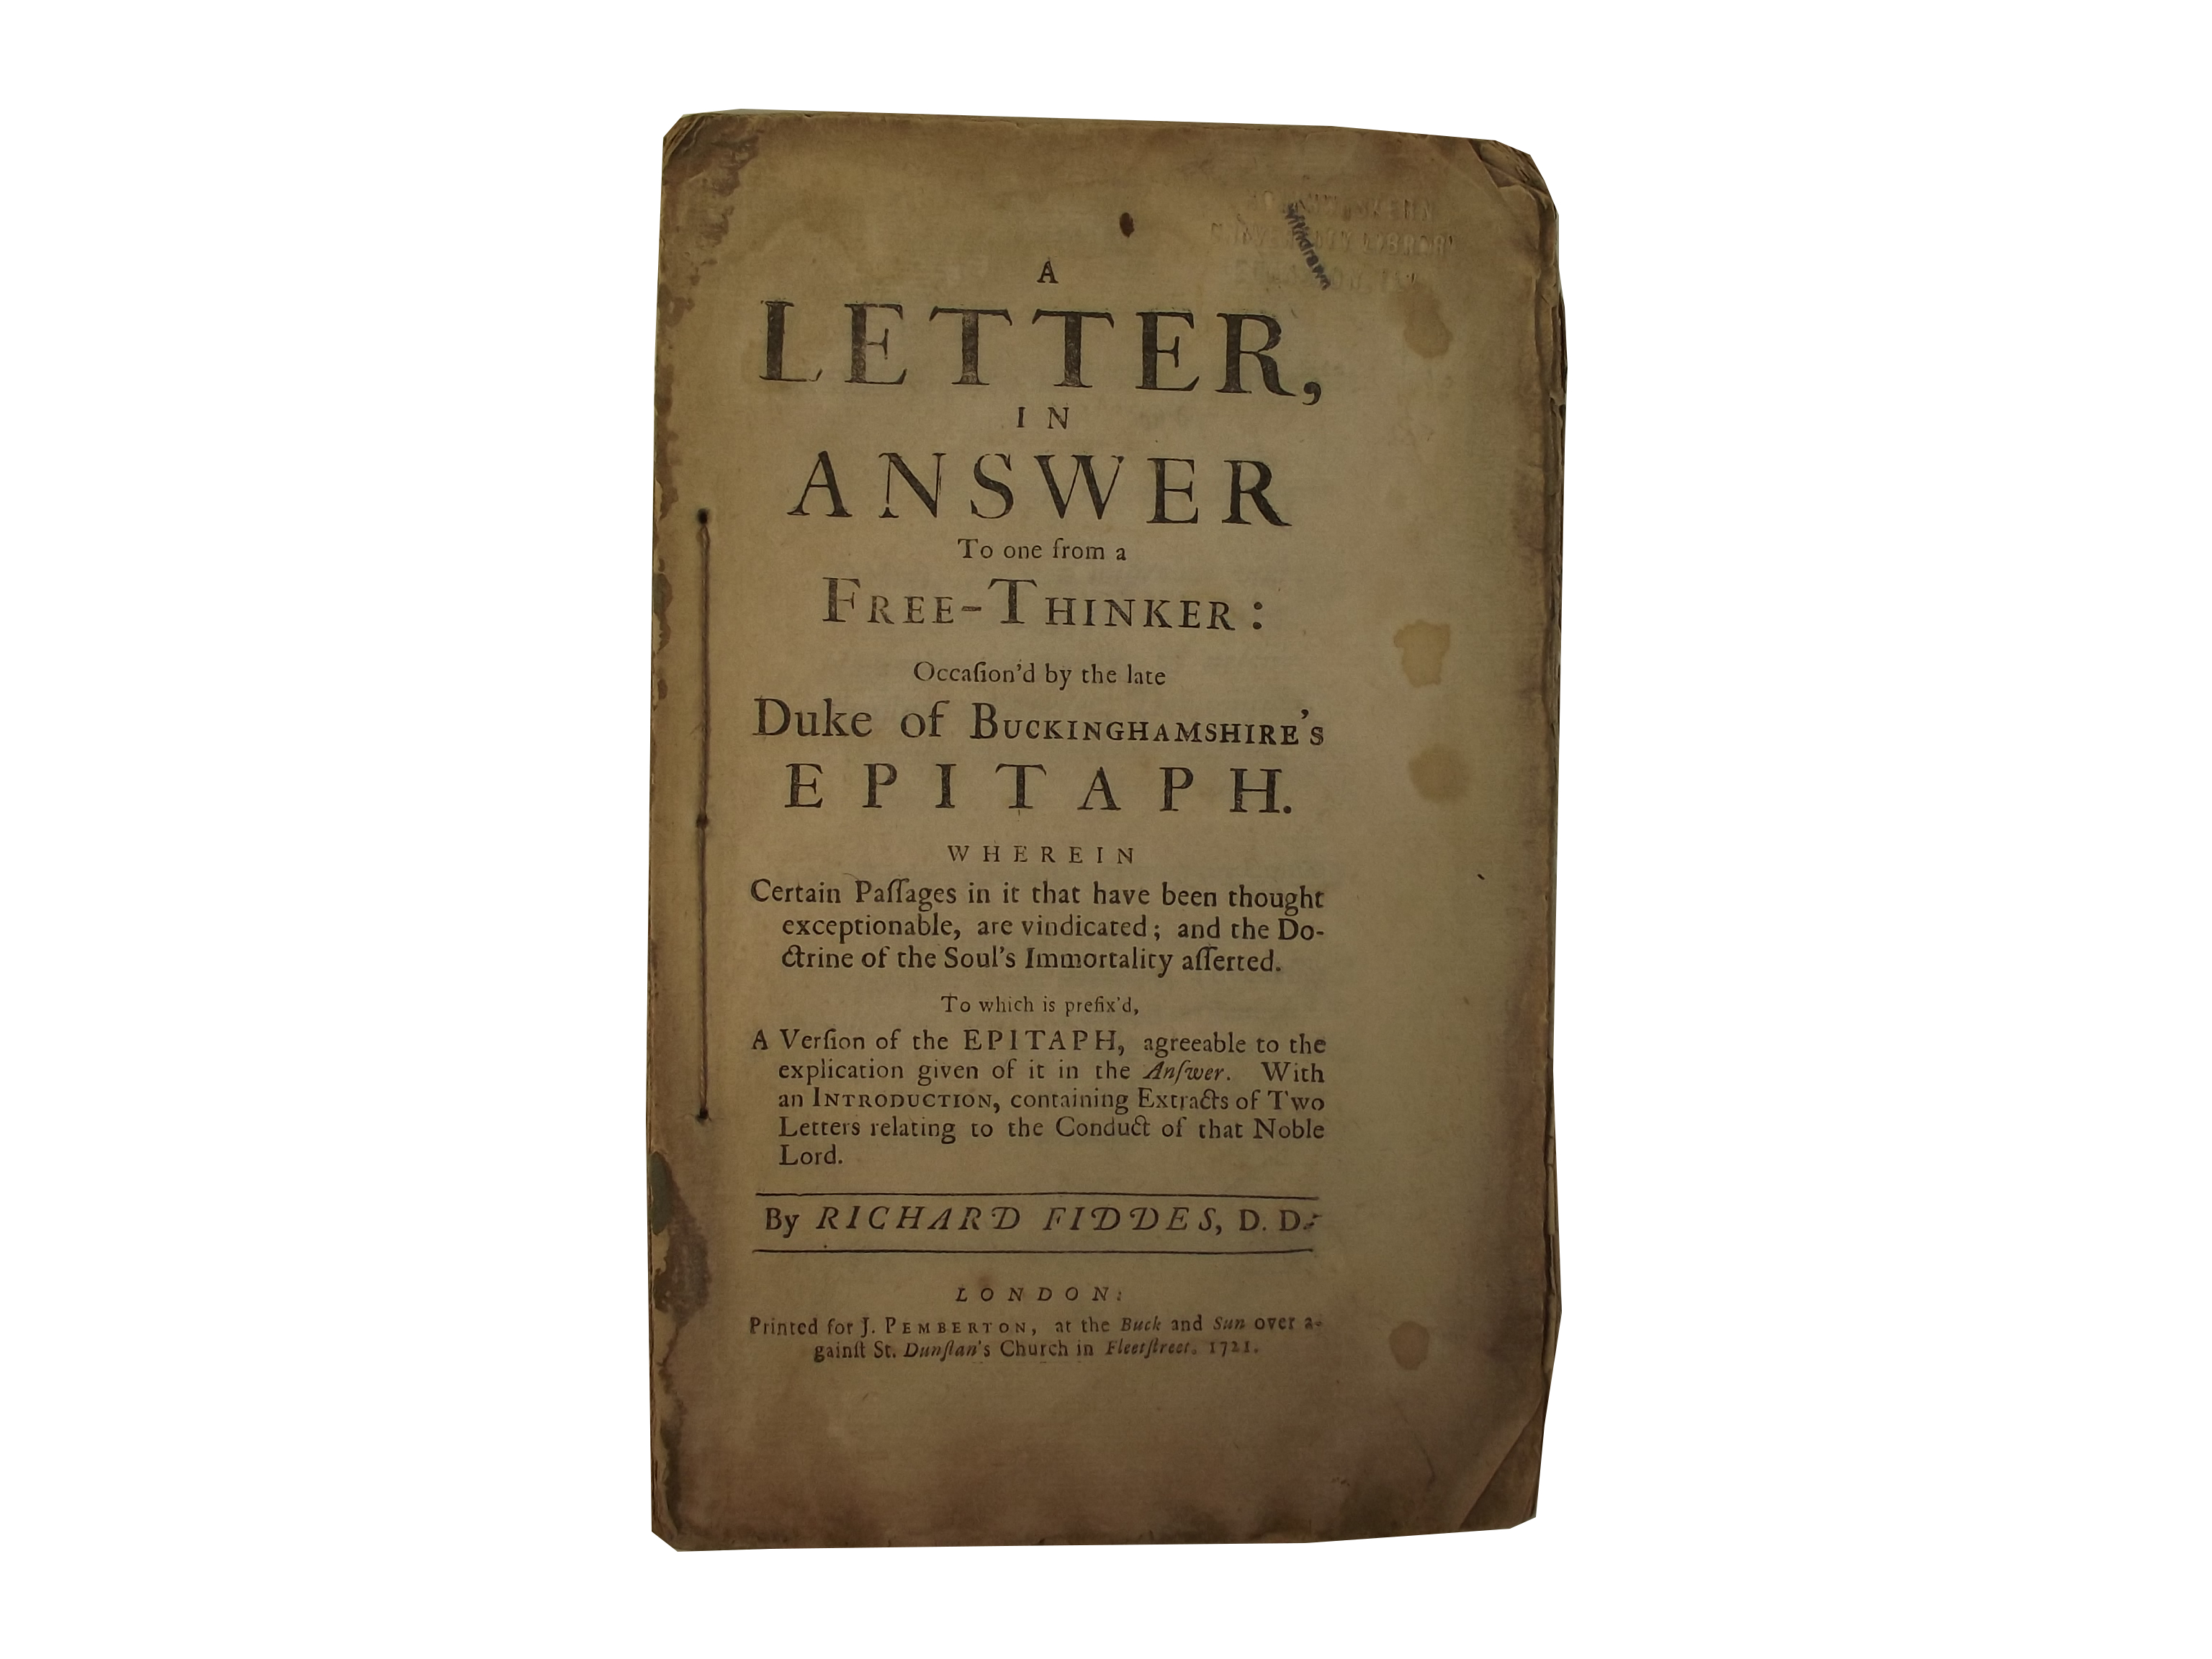 Letter in Answer